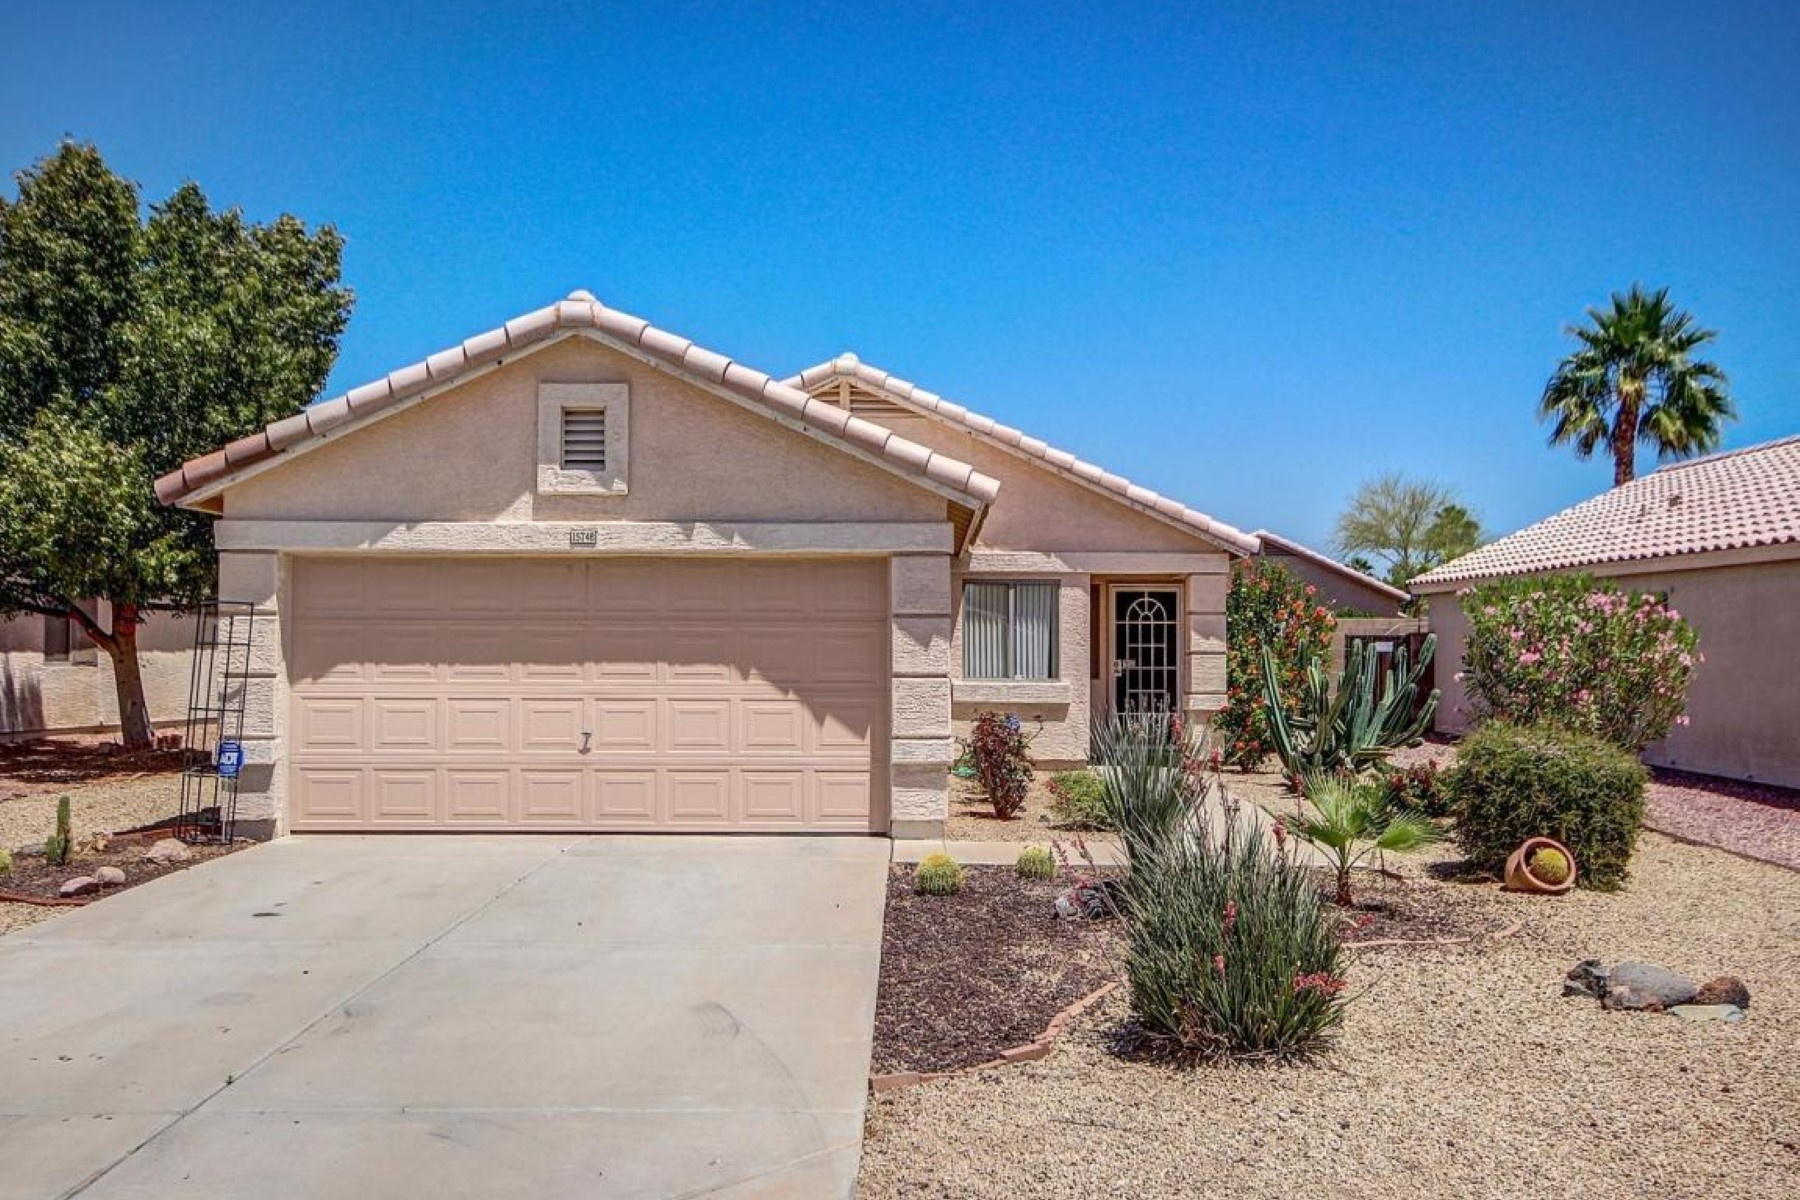 rentals property at Clean and bright home in Mountain Vista Ranch